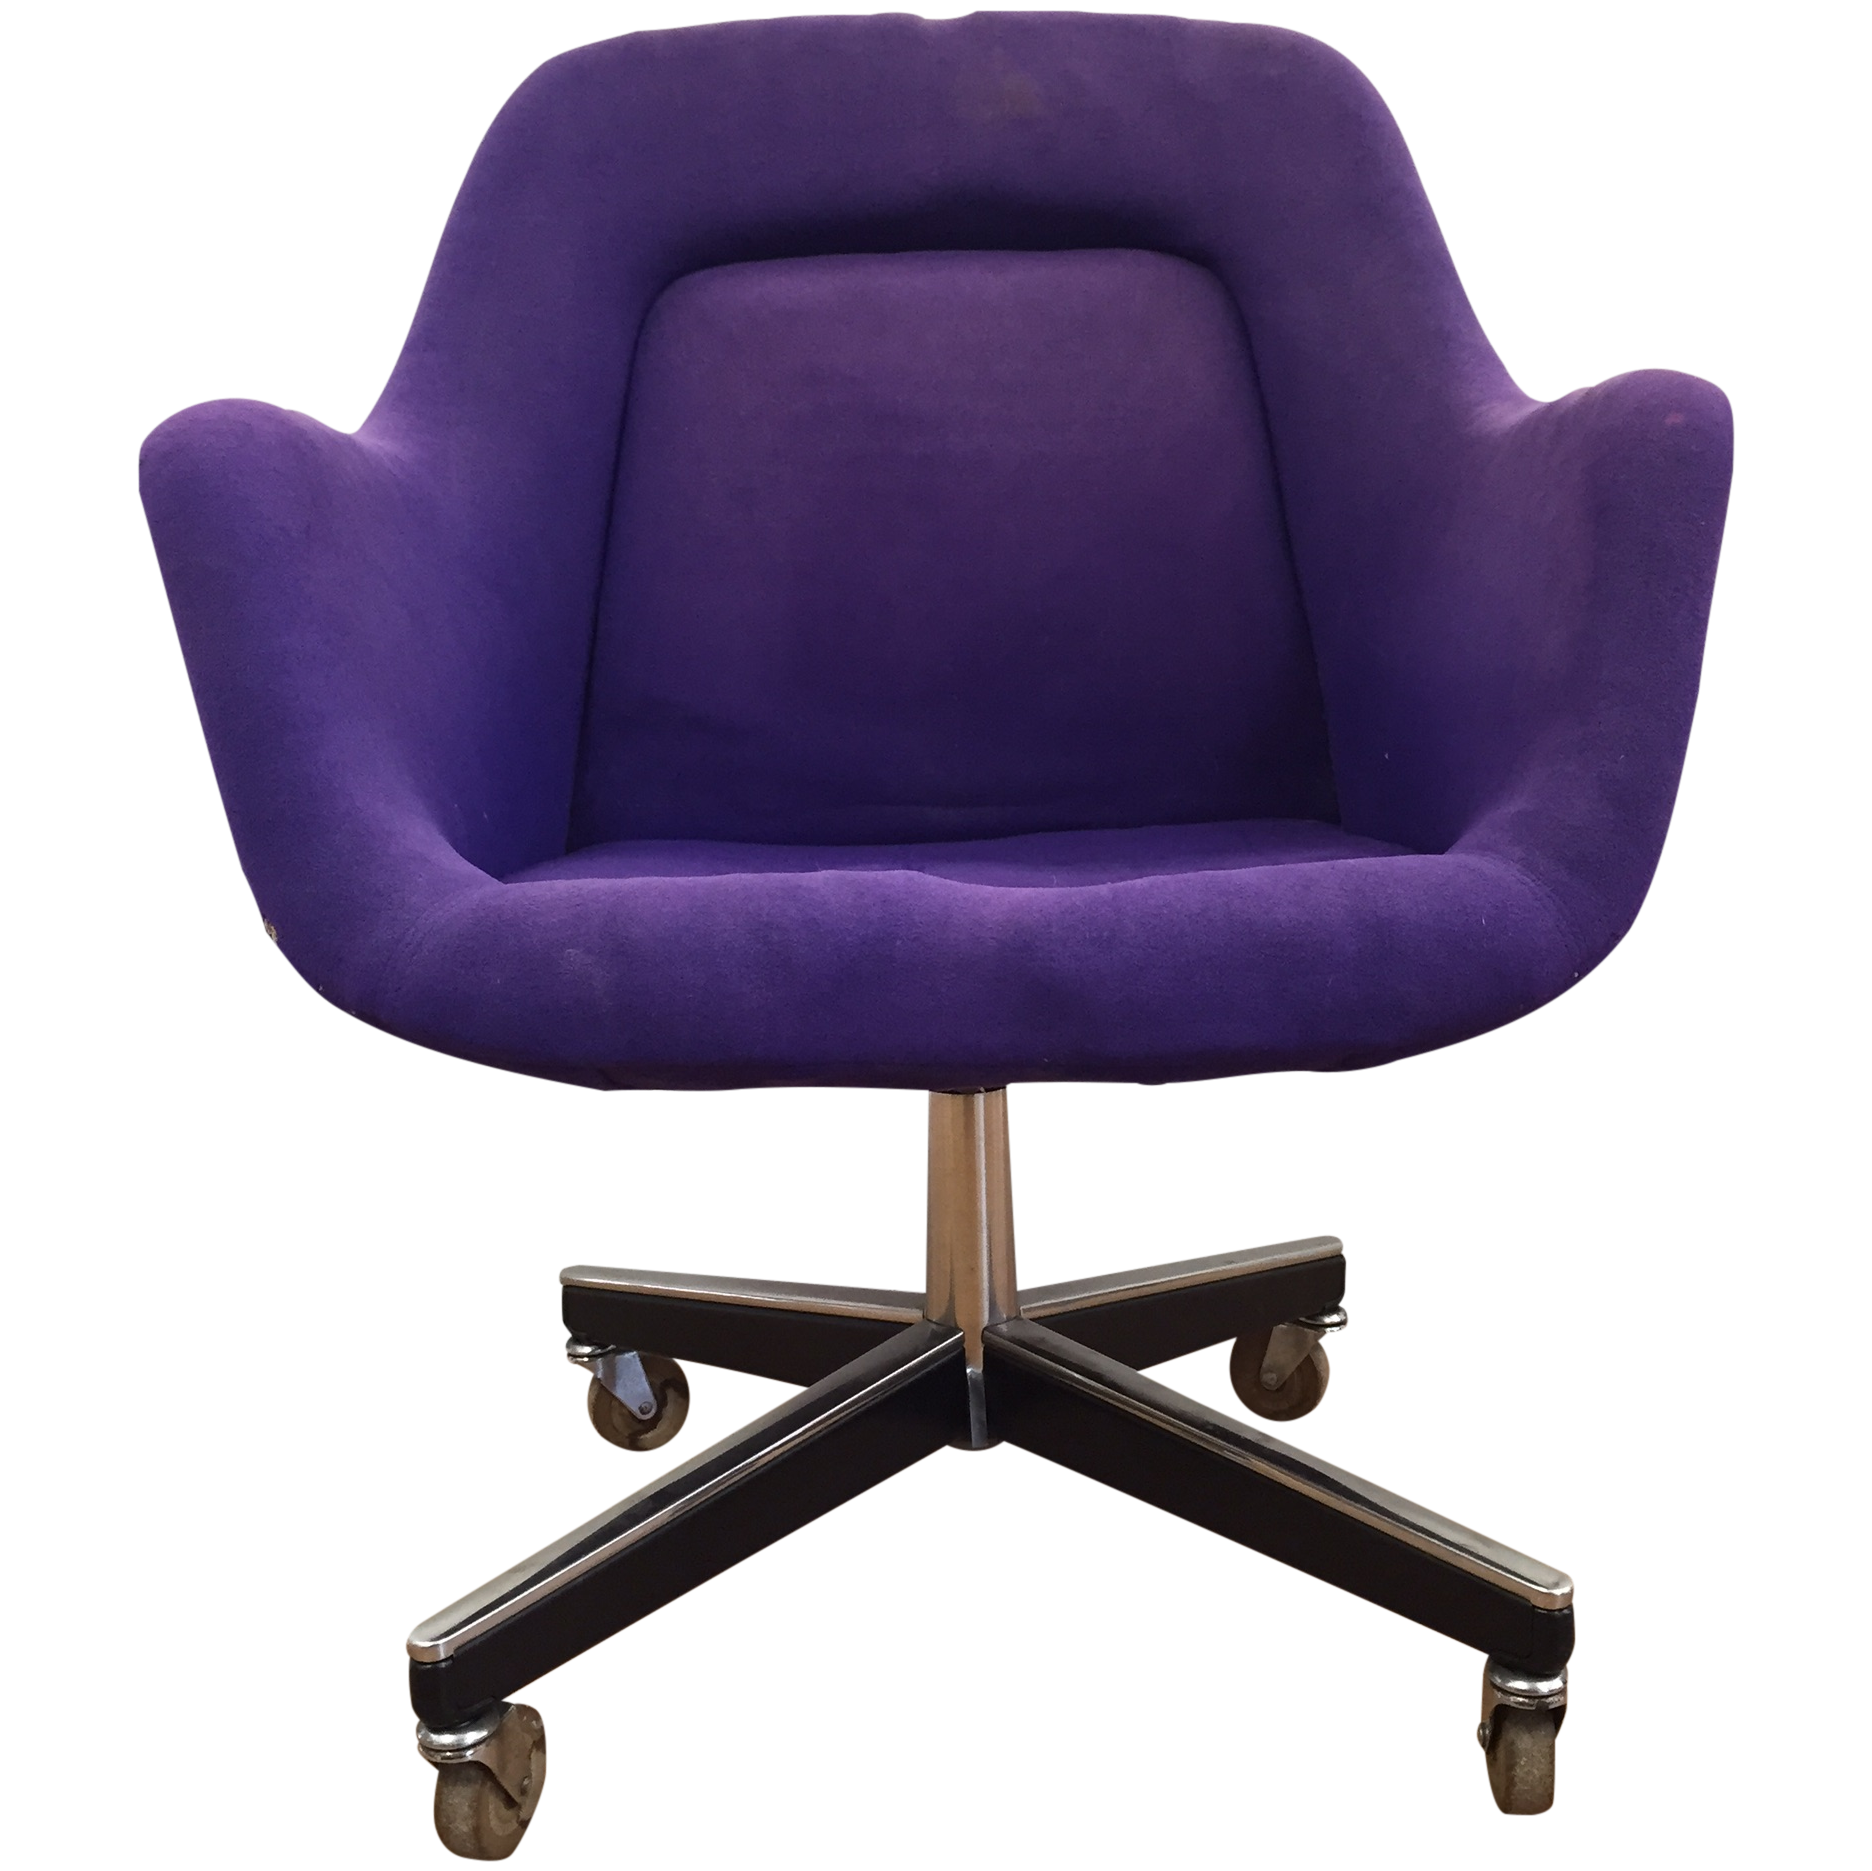 Purple Max Pearson for Knoll Chair | Knoll chairs, Office desks and ...